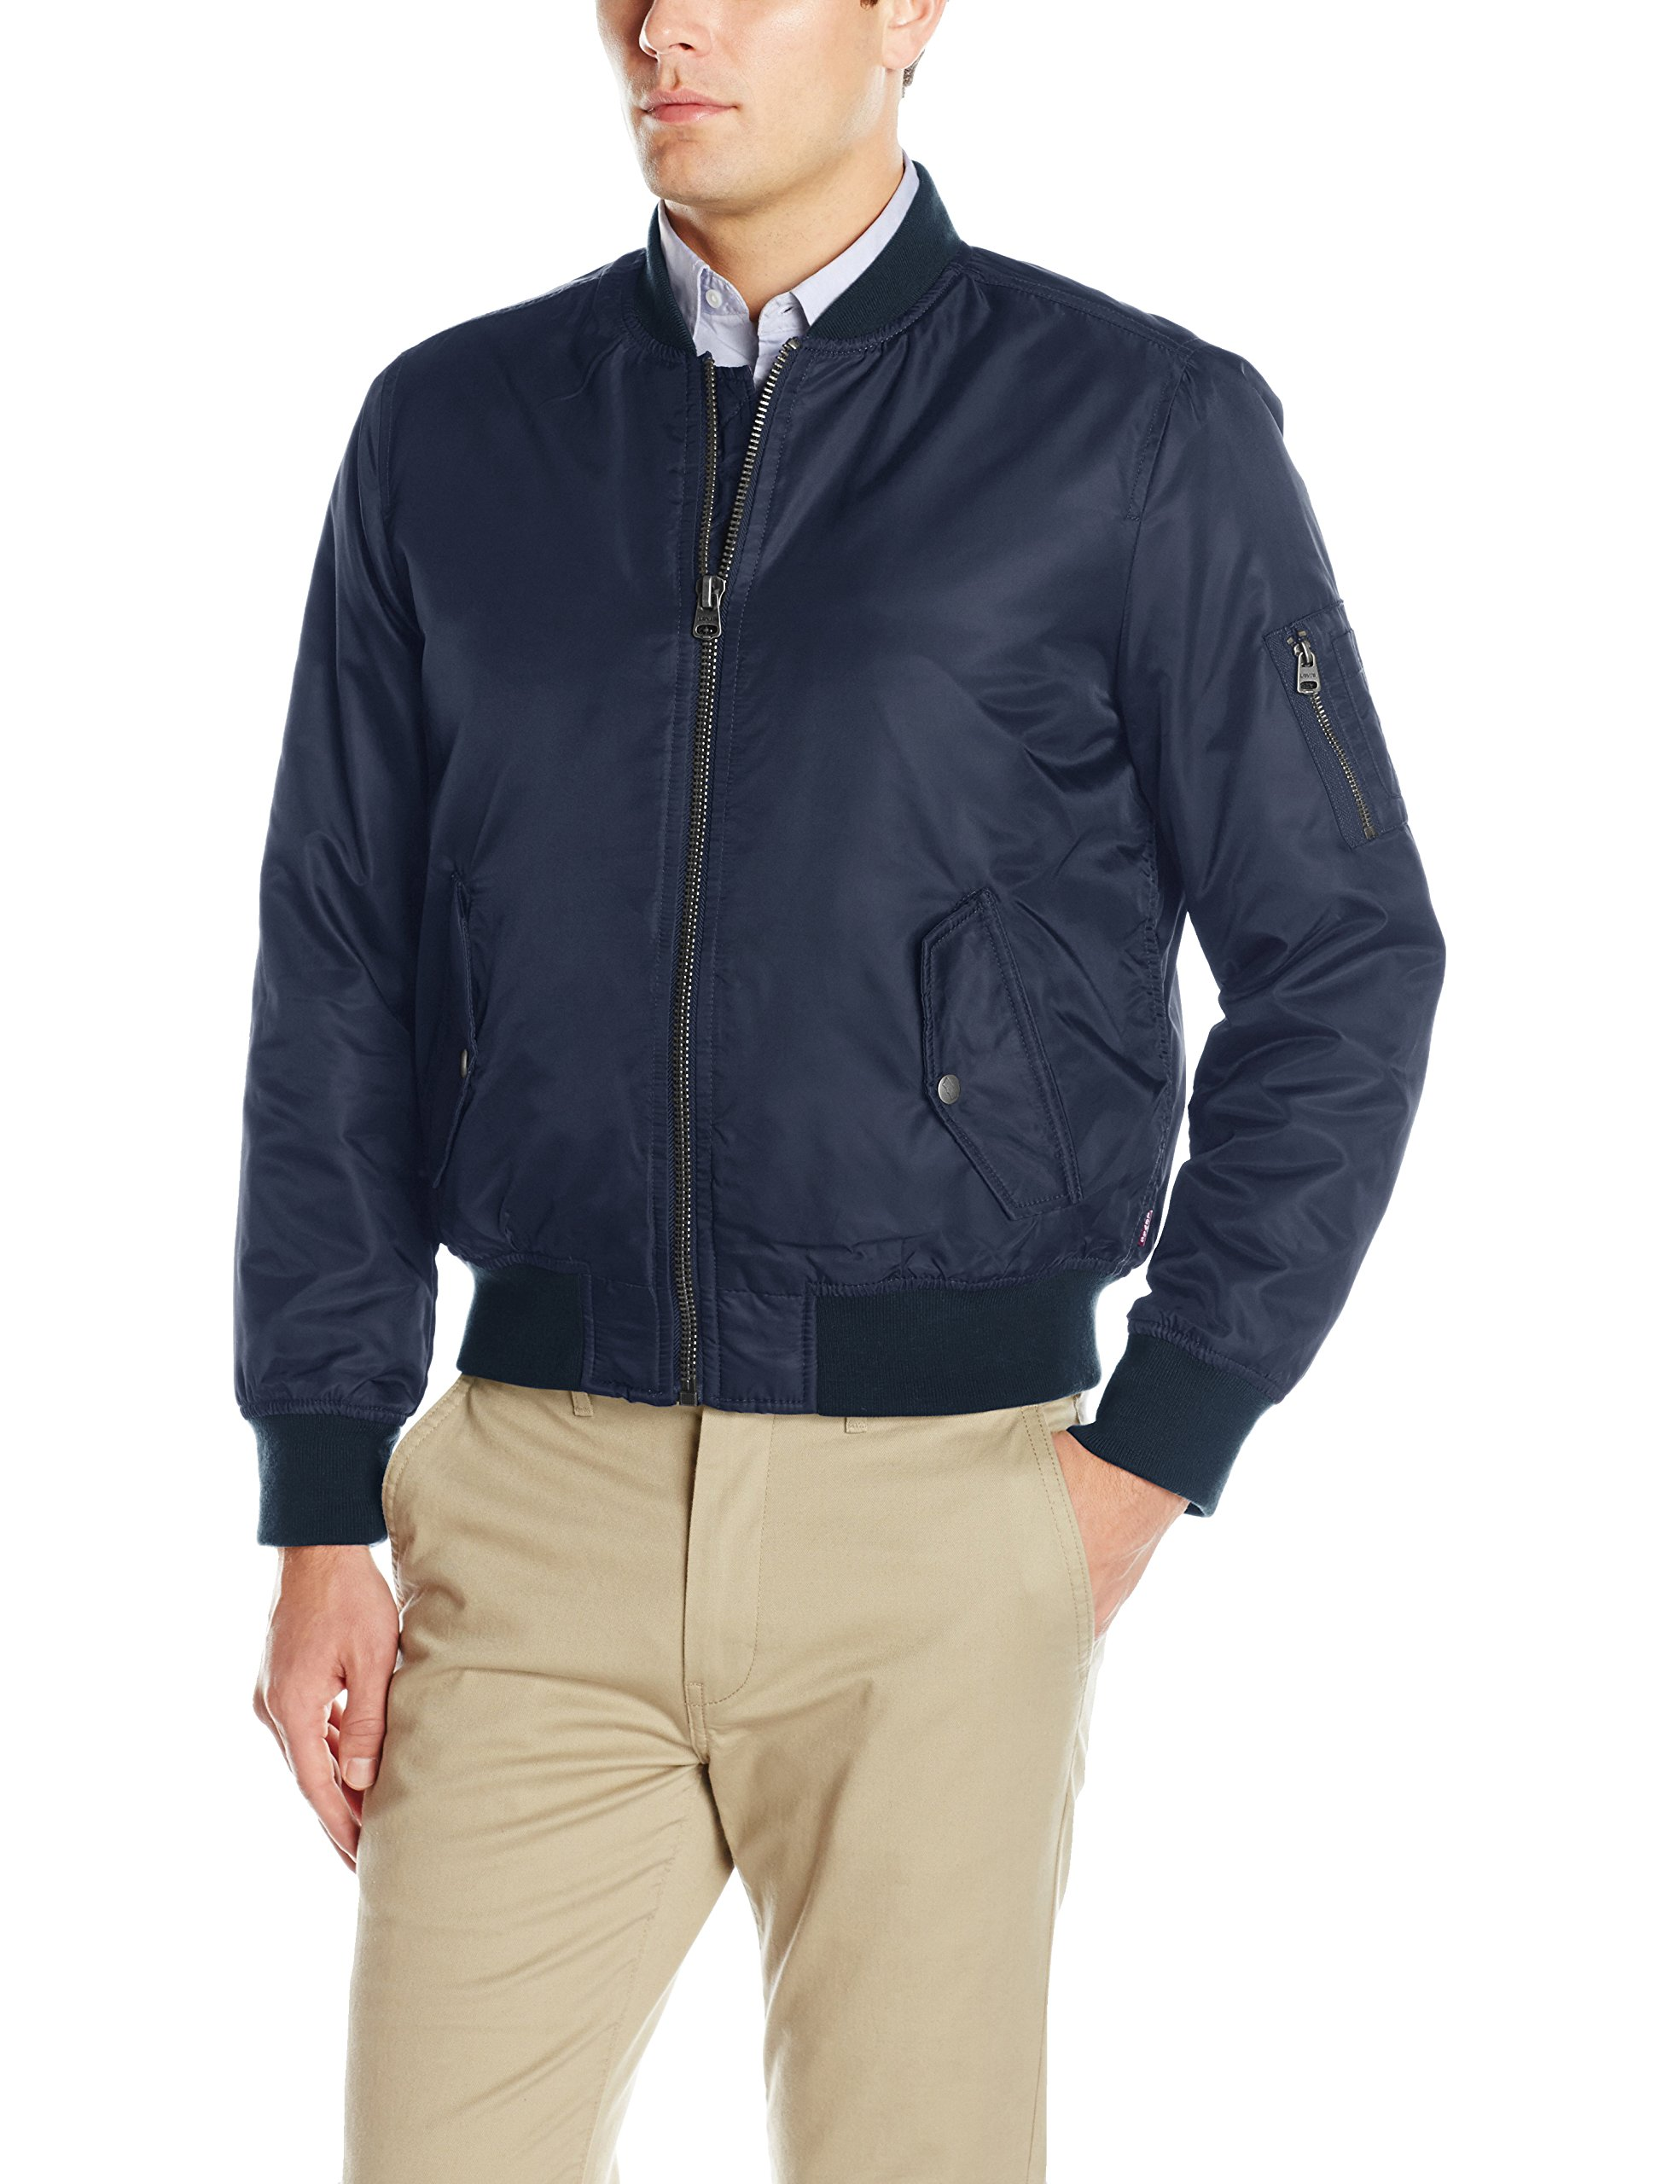 Levi's Men's Ma-1 Flight Jacket, Navy, Medium